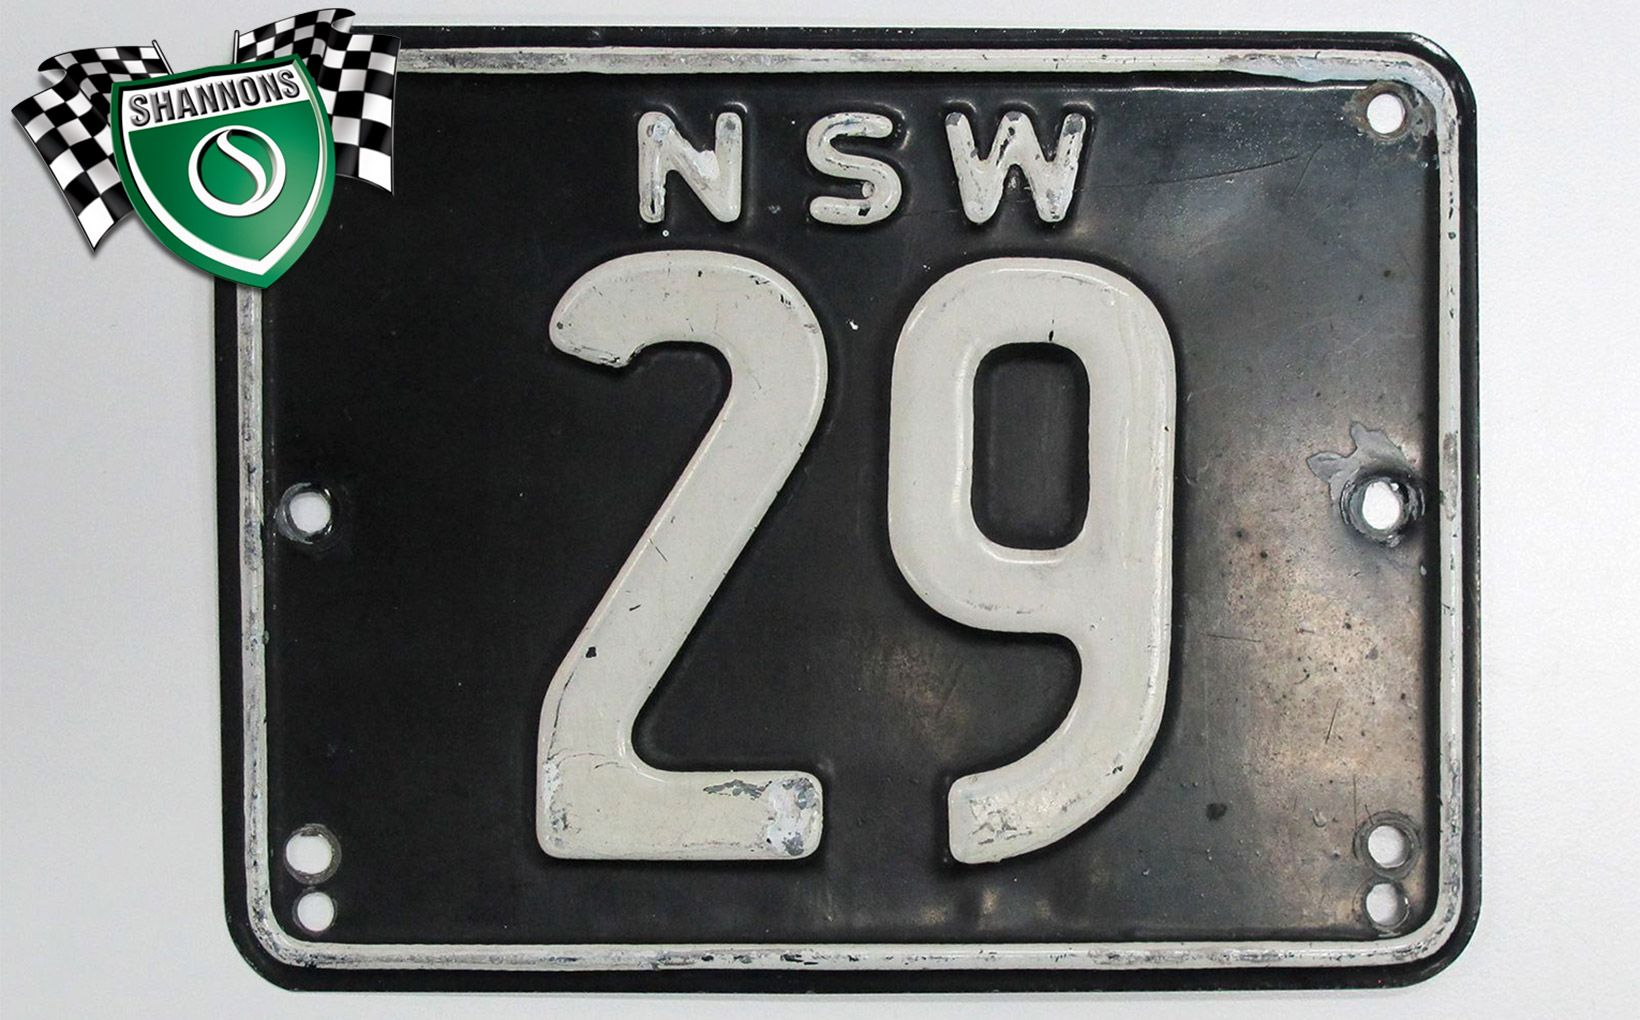 Record 745 000 Paid For Nsw Number Plate 29 Shannons Club